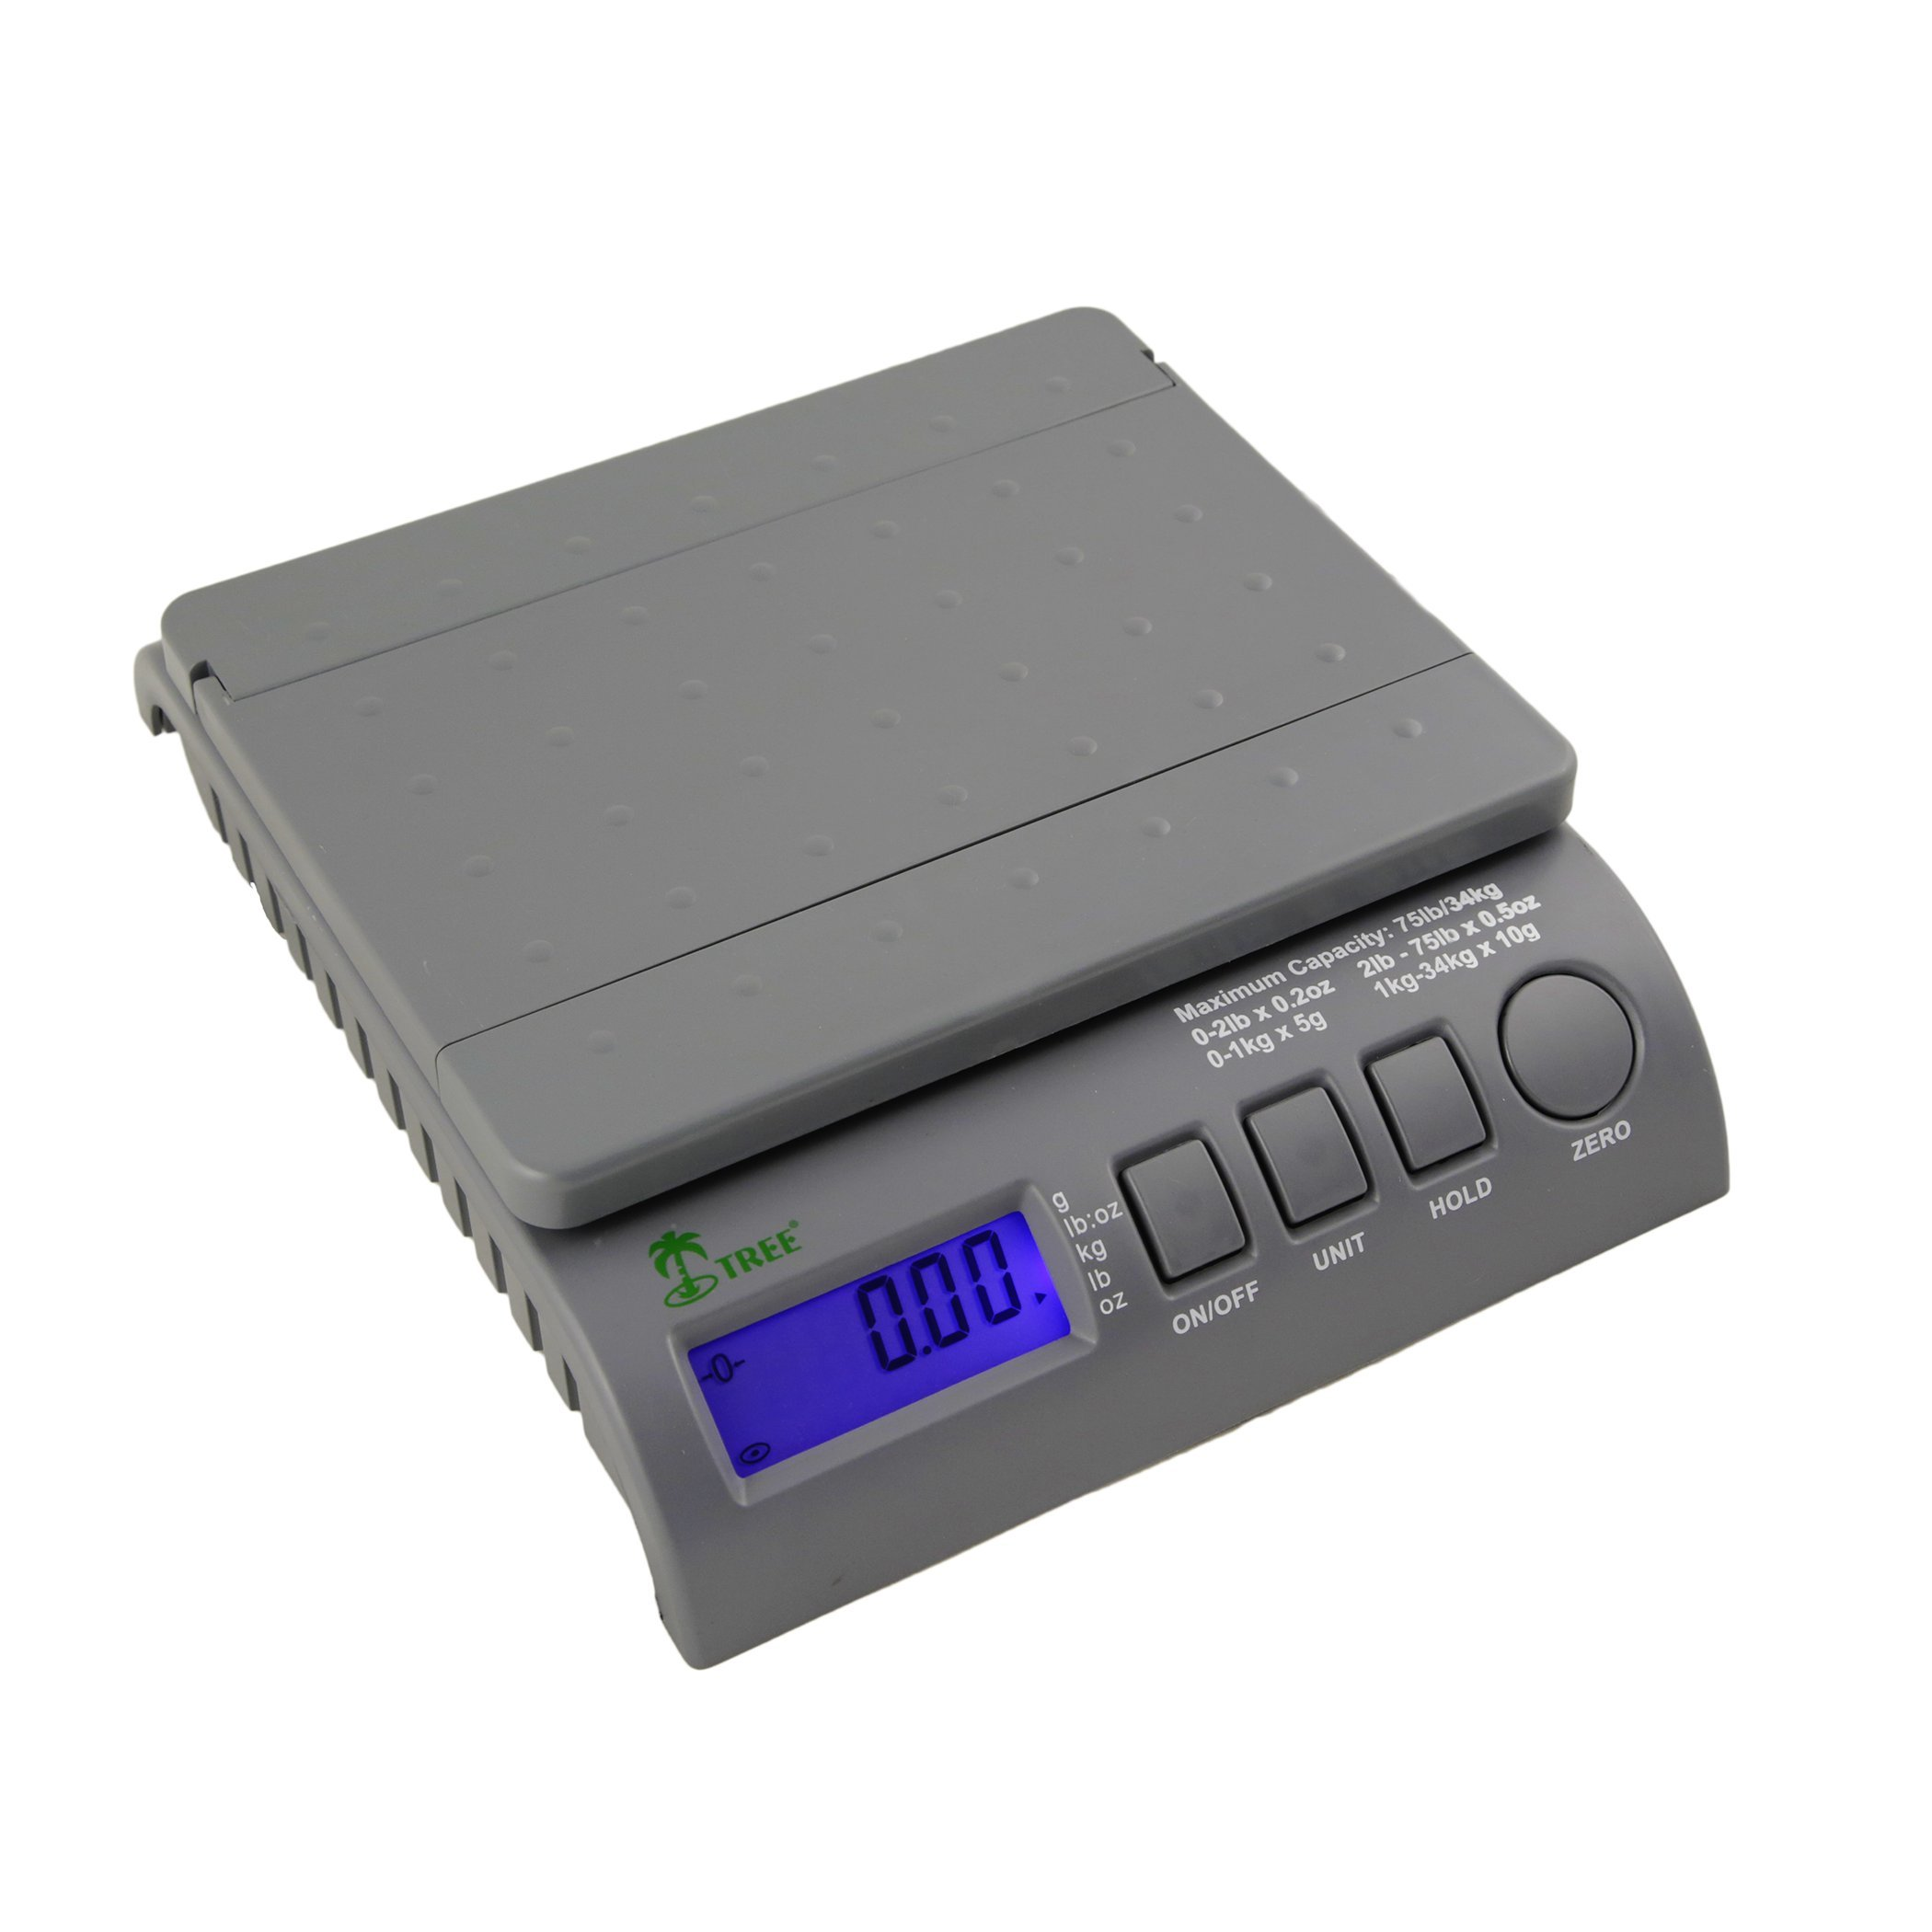 Digital Postal Shipping Postage Bench Scales 35 lbs by LW Measurements, LLC (Image #2)